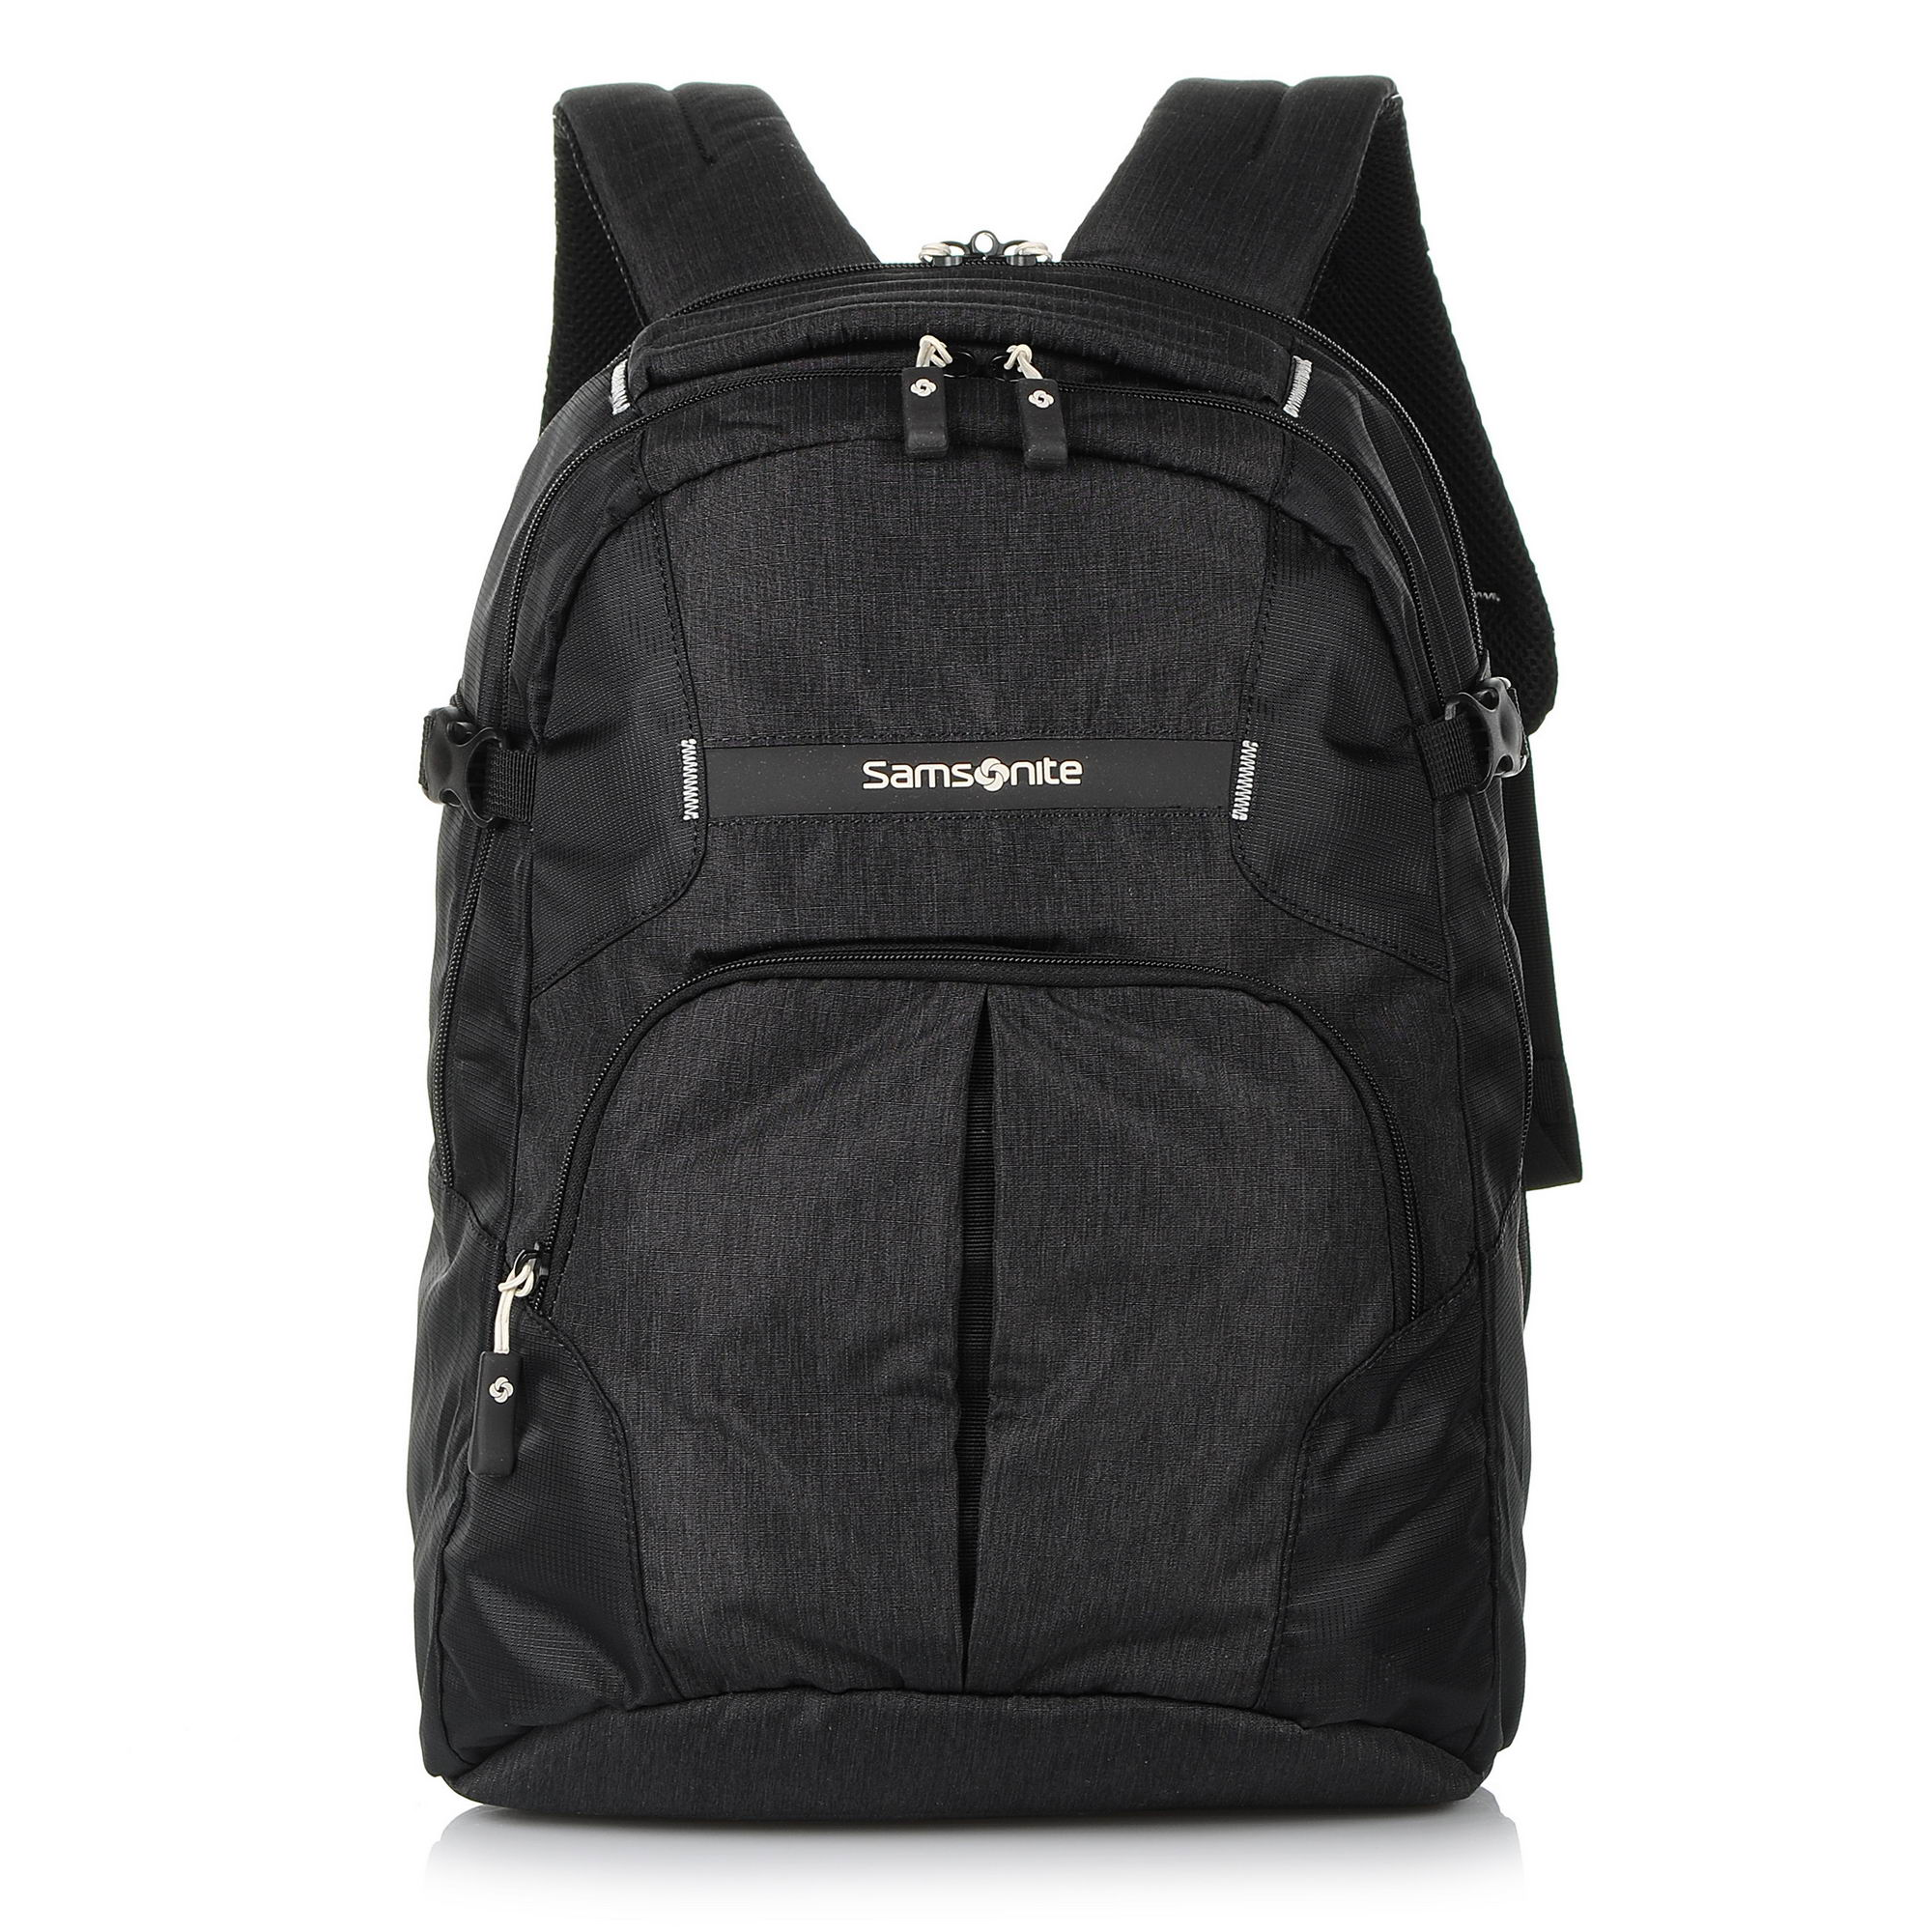 f4b3c6379d Σακίδιο Πλάτης Samsonite Rewind Laptop Backpack M 75251